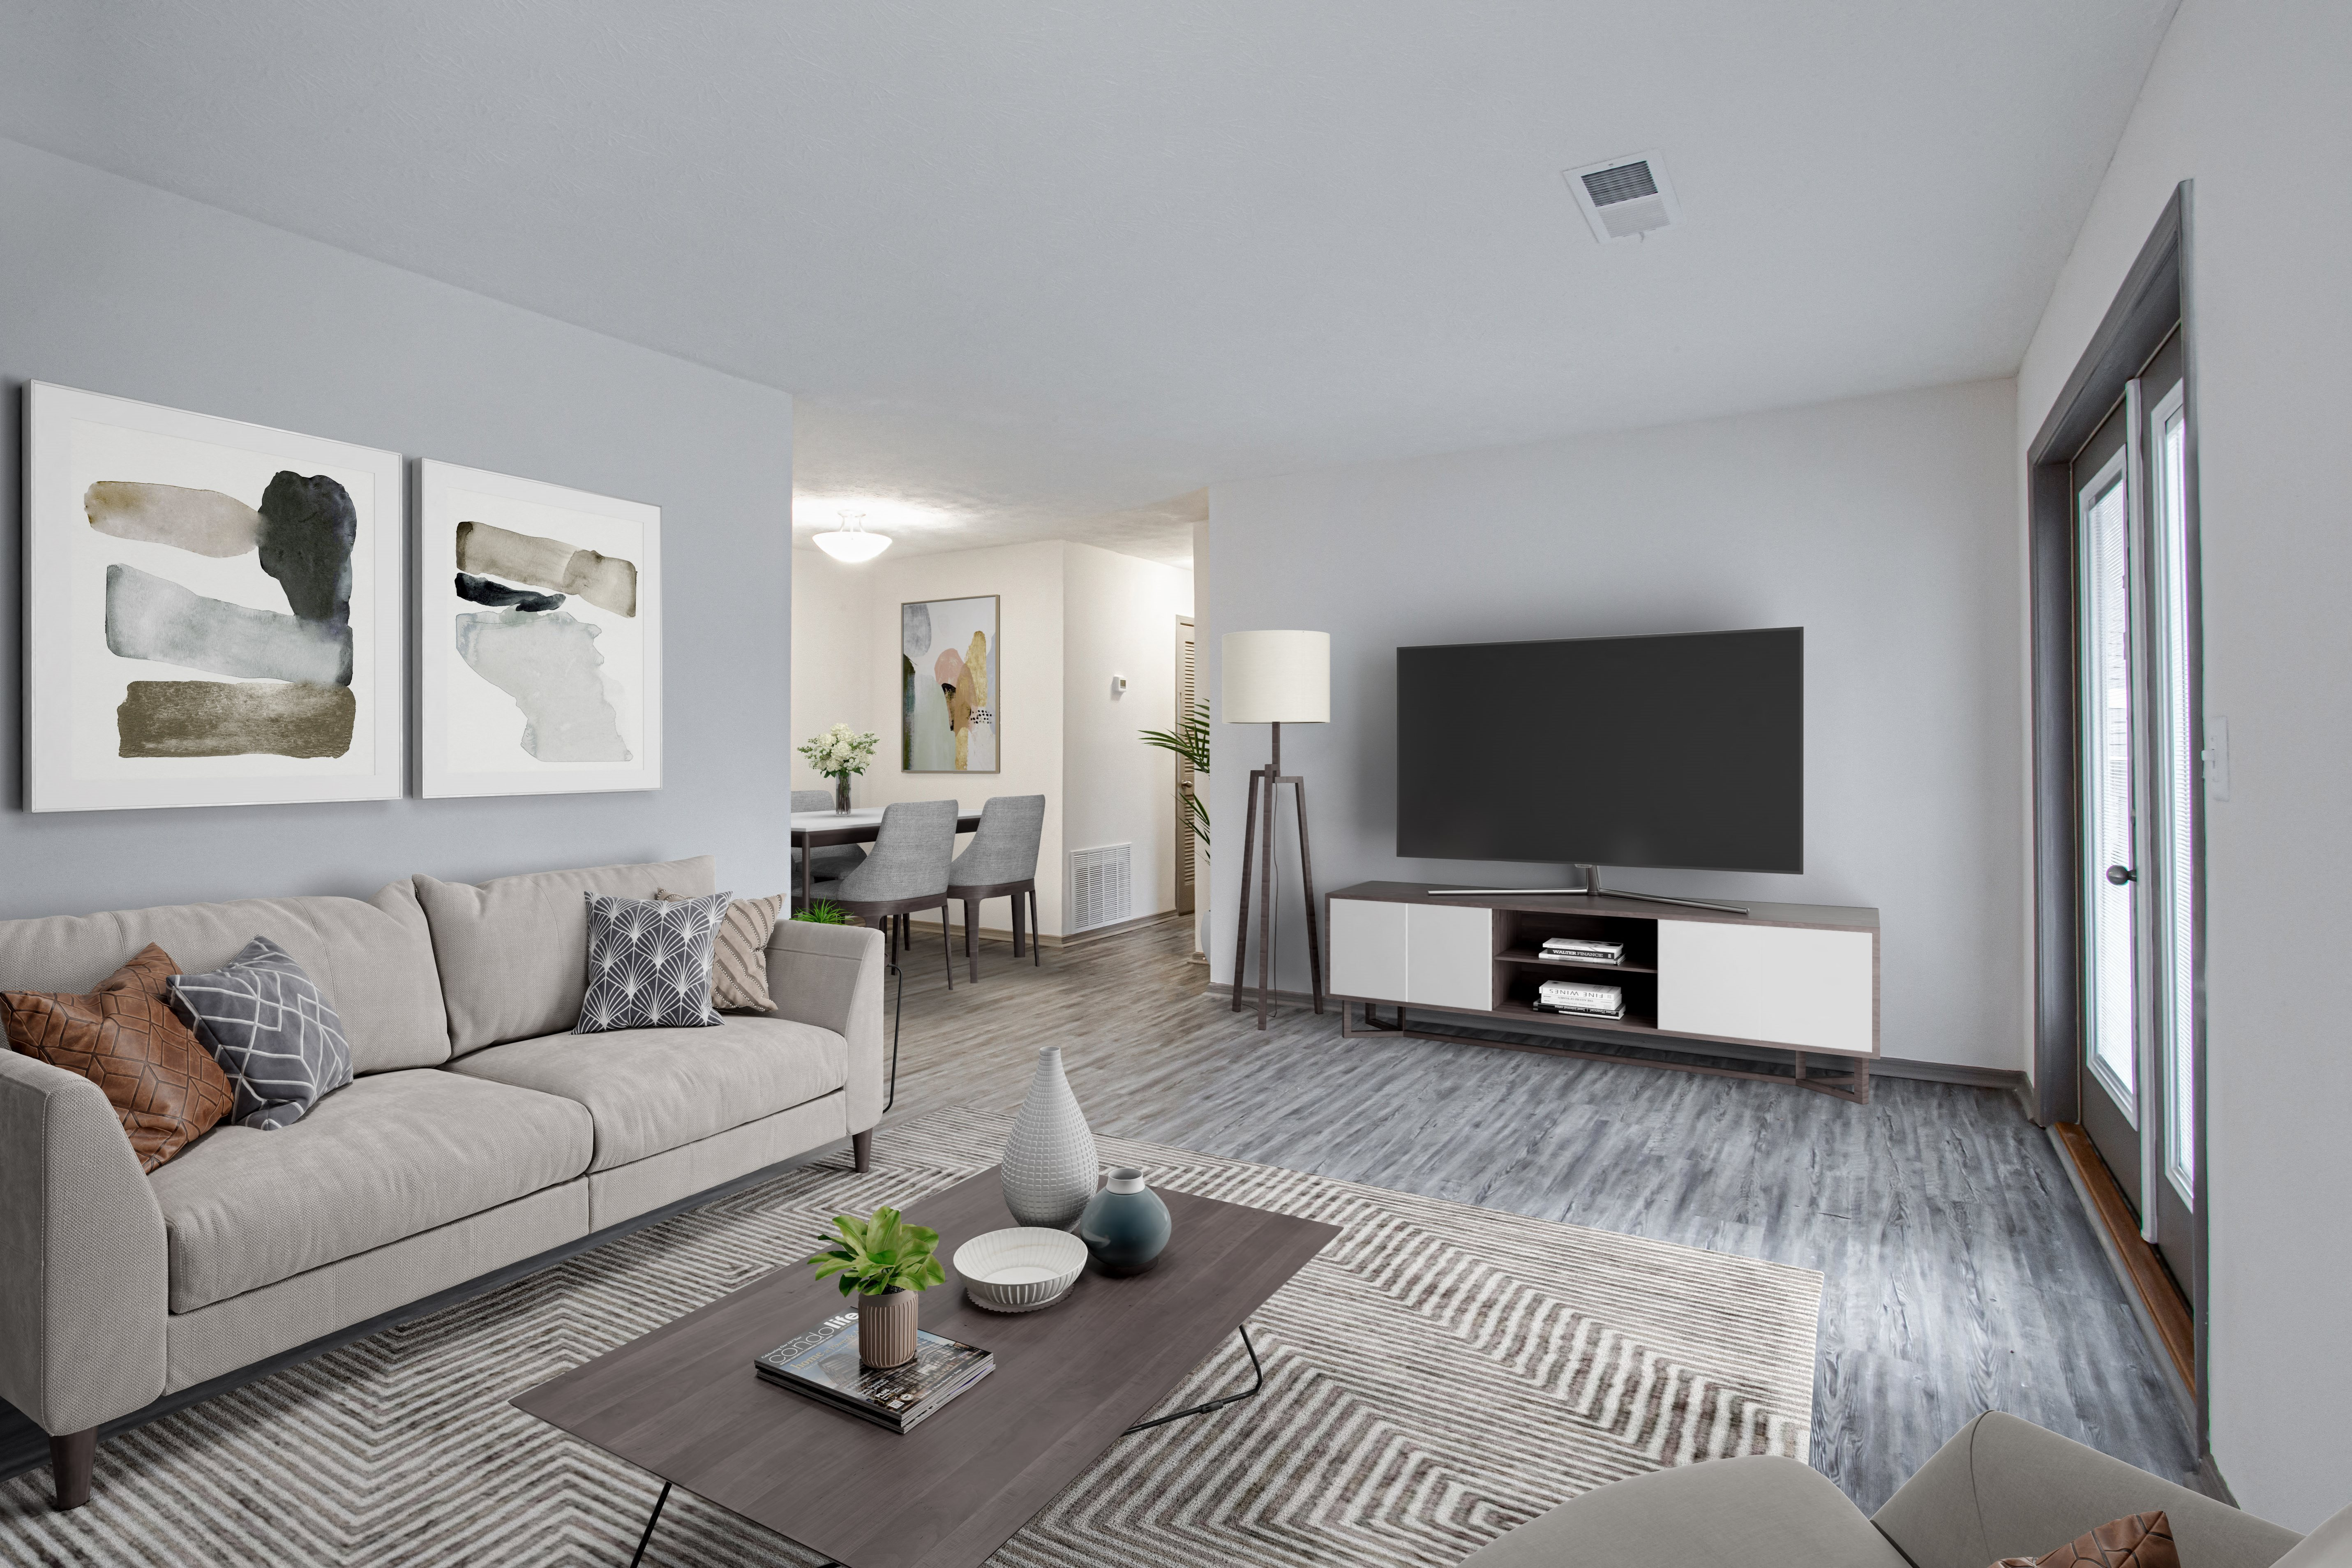 Living Room With Television at Reserve at Sweetwater Creek, Georgia, 30168